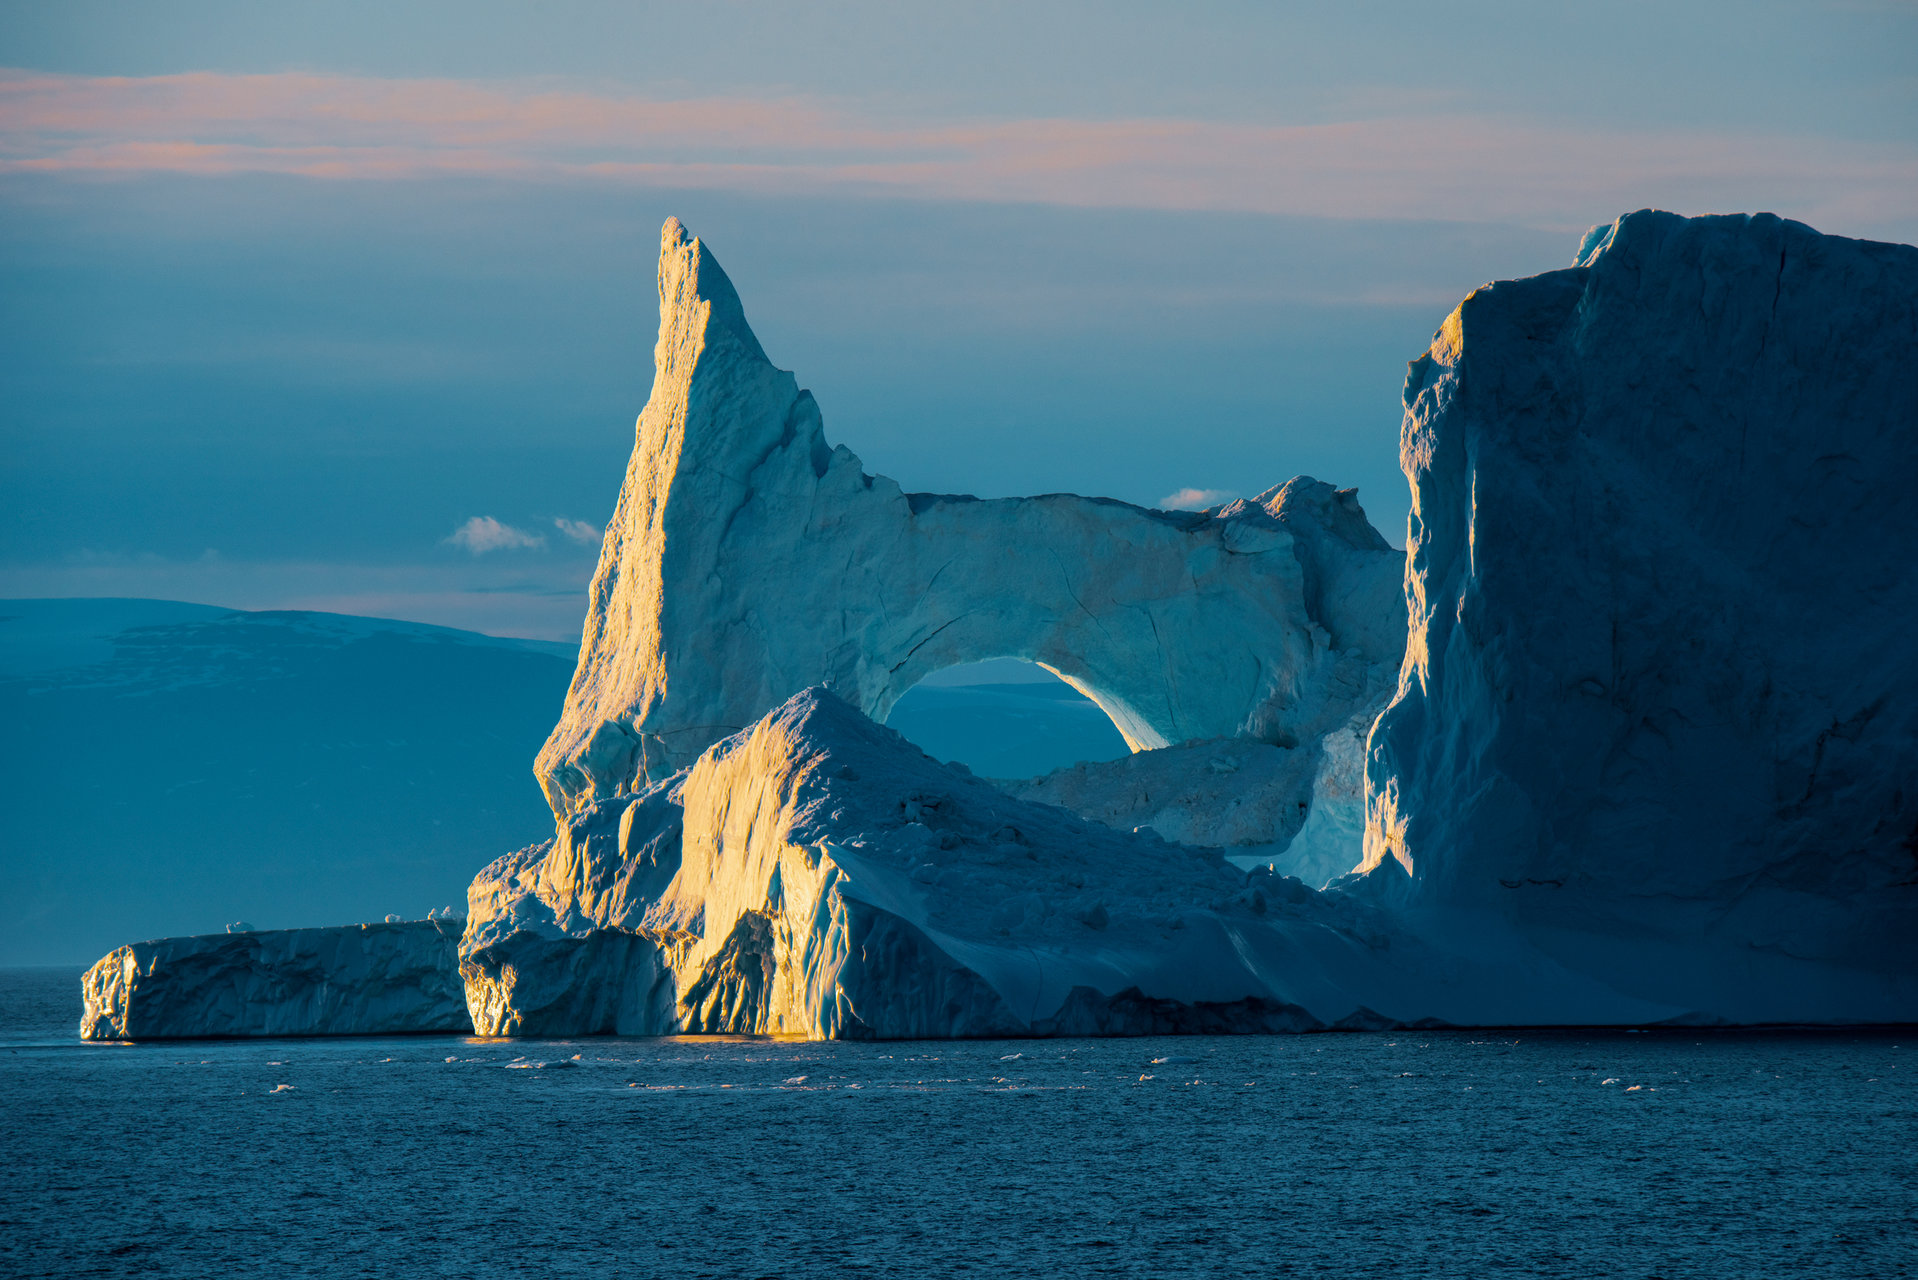 The Disappearing Beauty of Greenland | Author Жоро  - HITTHEROAD | PHOTO FORUM